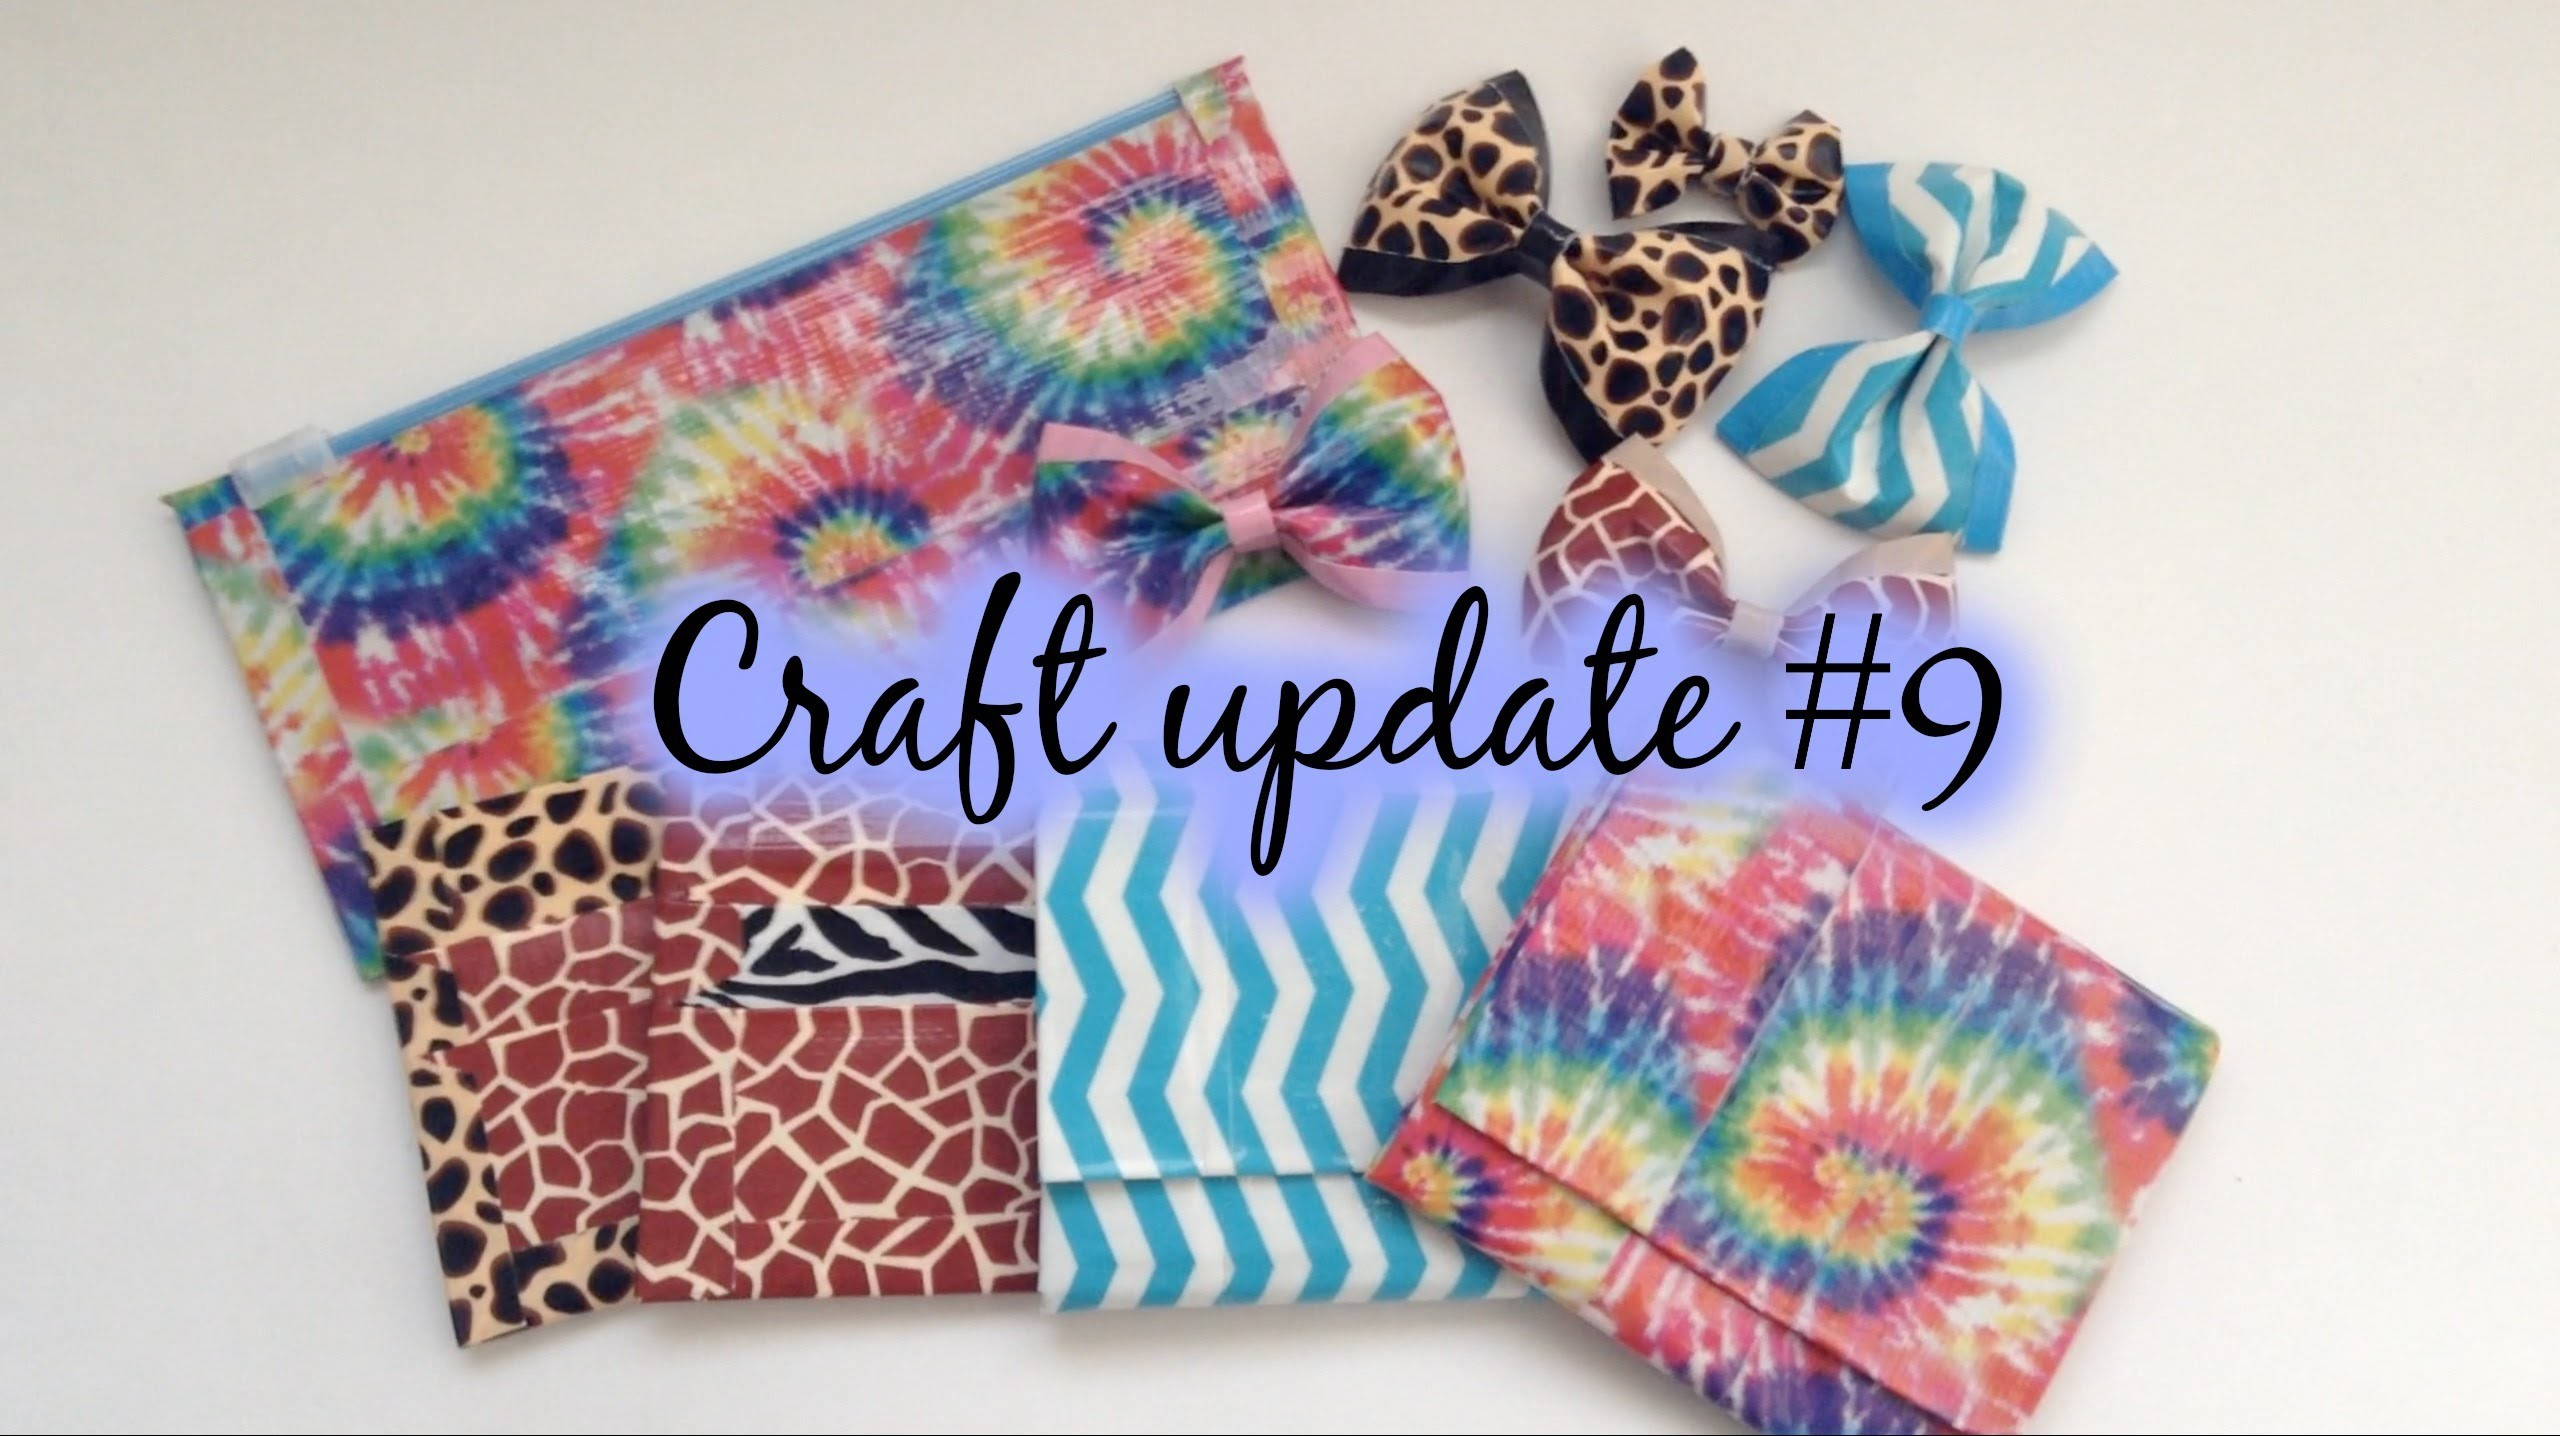 Giraffe is Zebra (Craft update #9) | Alyssa's Arts